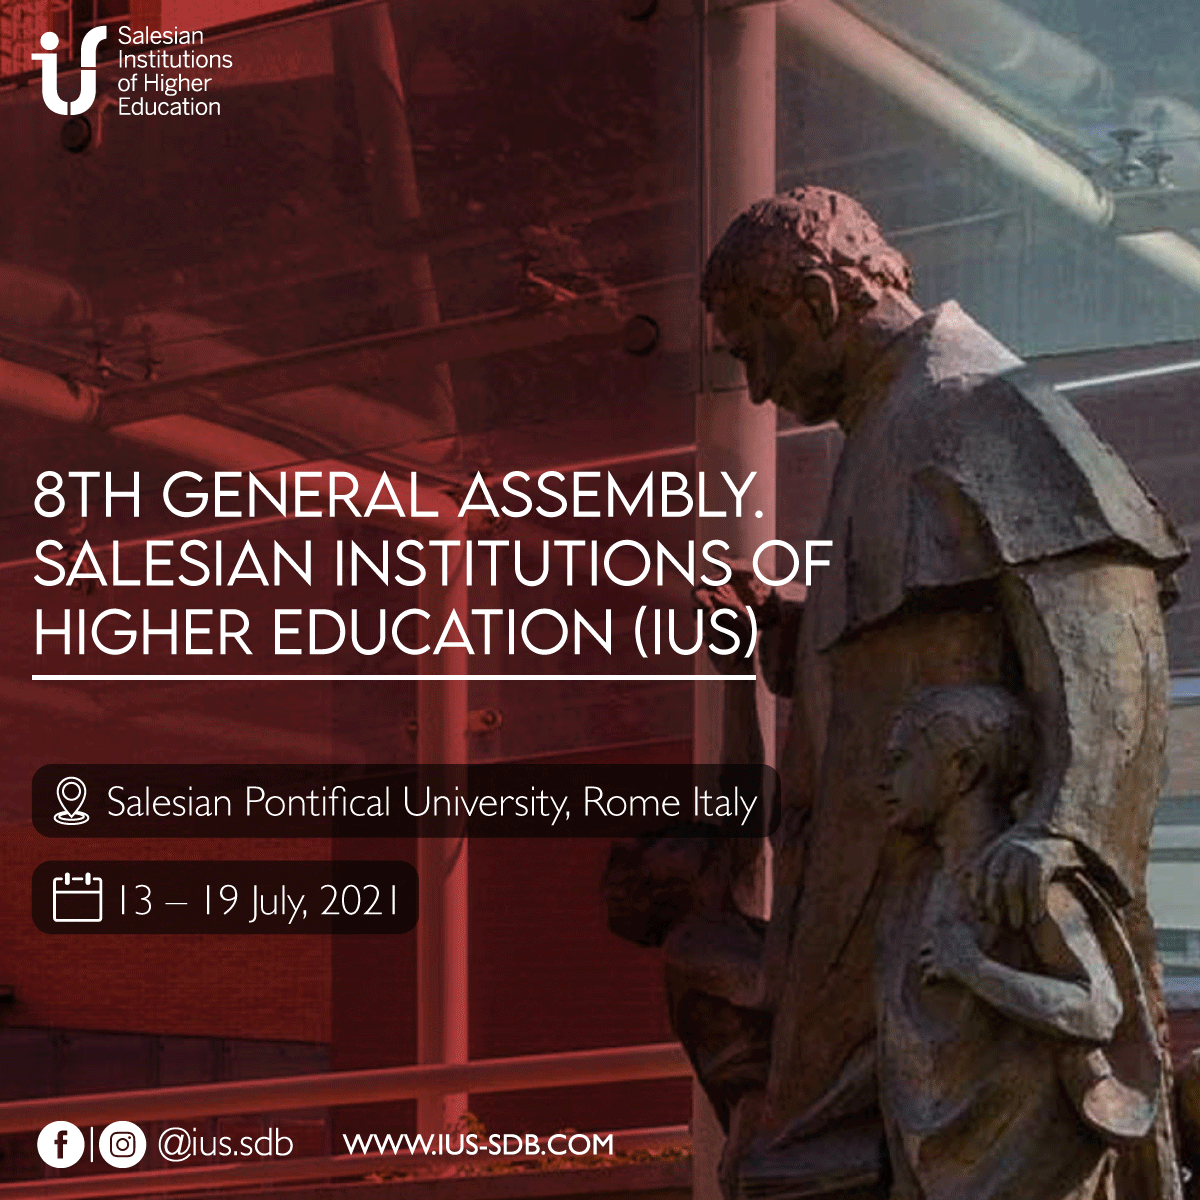 VIII General Assembly, Salesian Institutions of Higher Education IUS, Rome